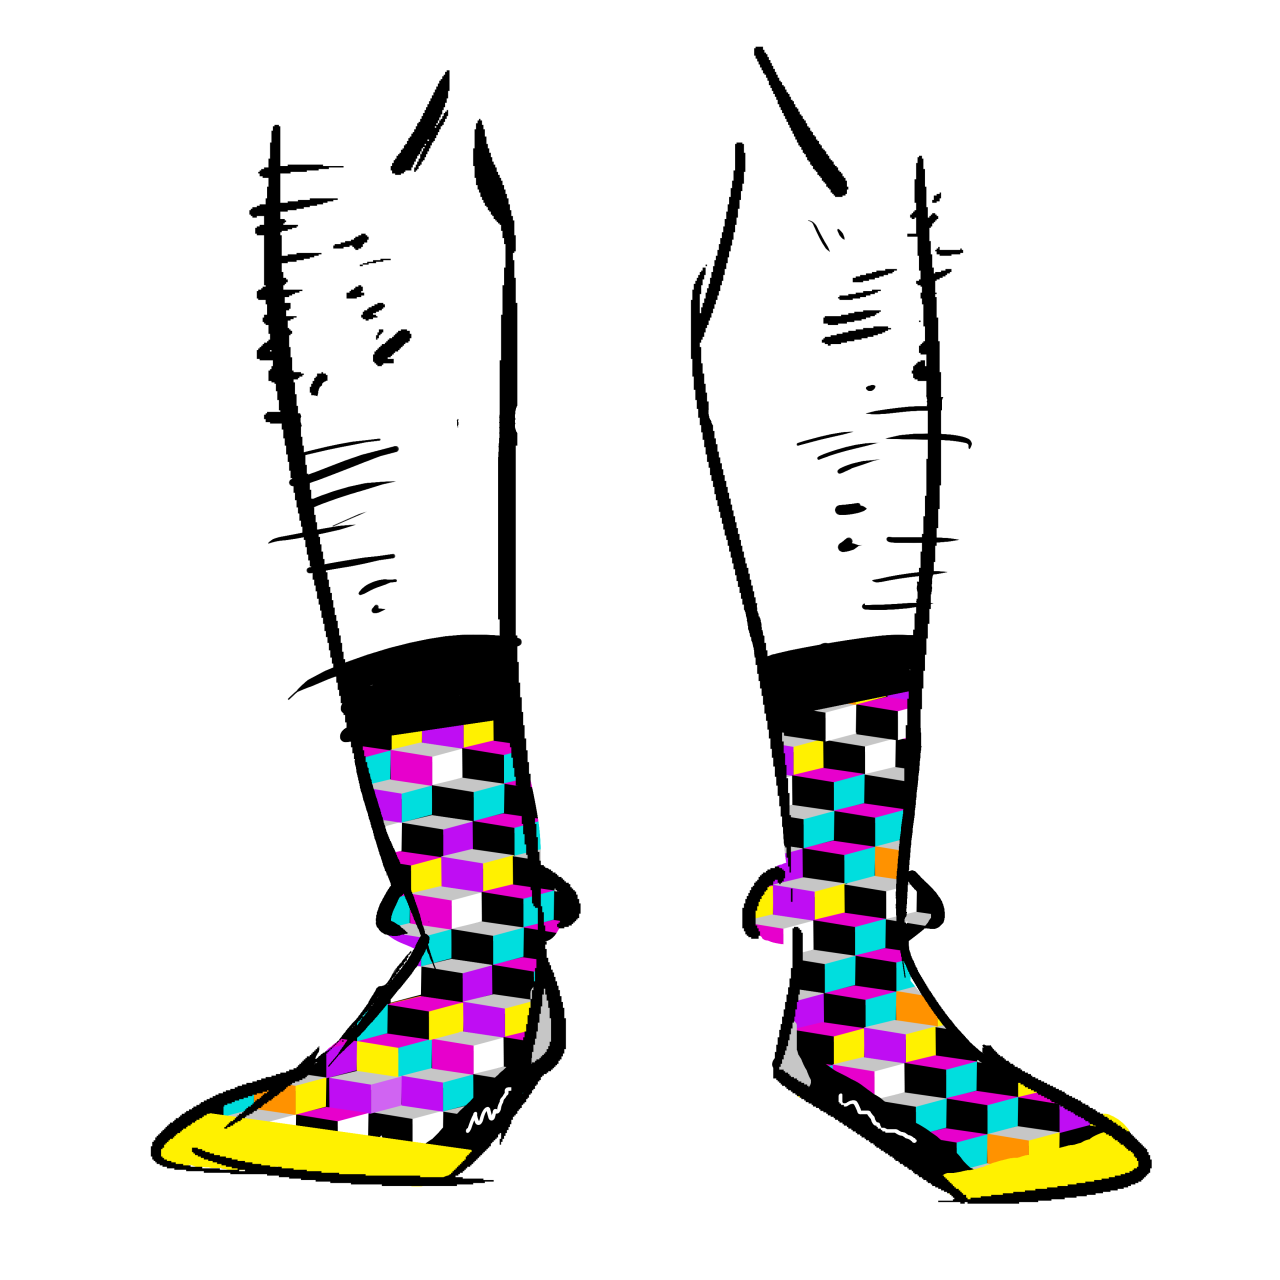 Black socks with a yellow toe. The pattern is brightly colored cubes.